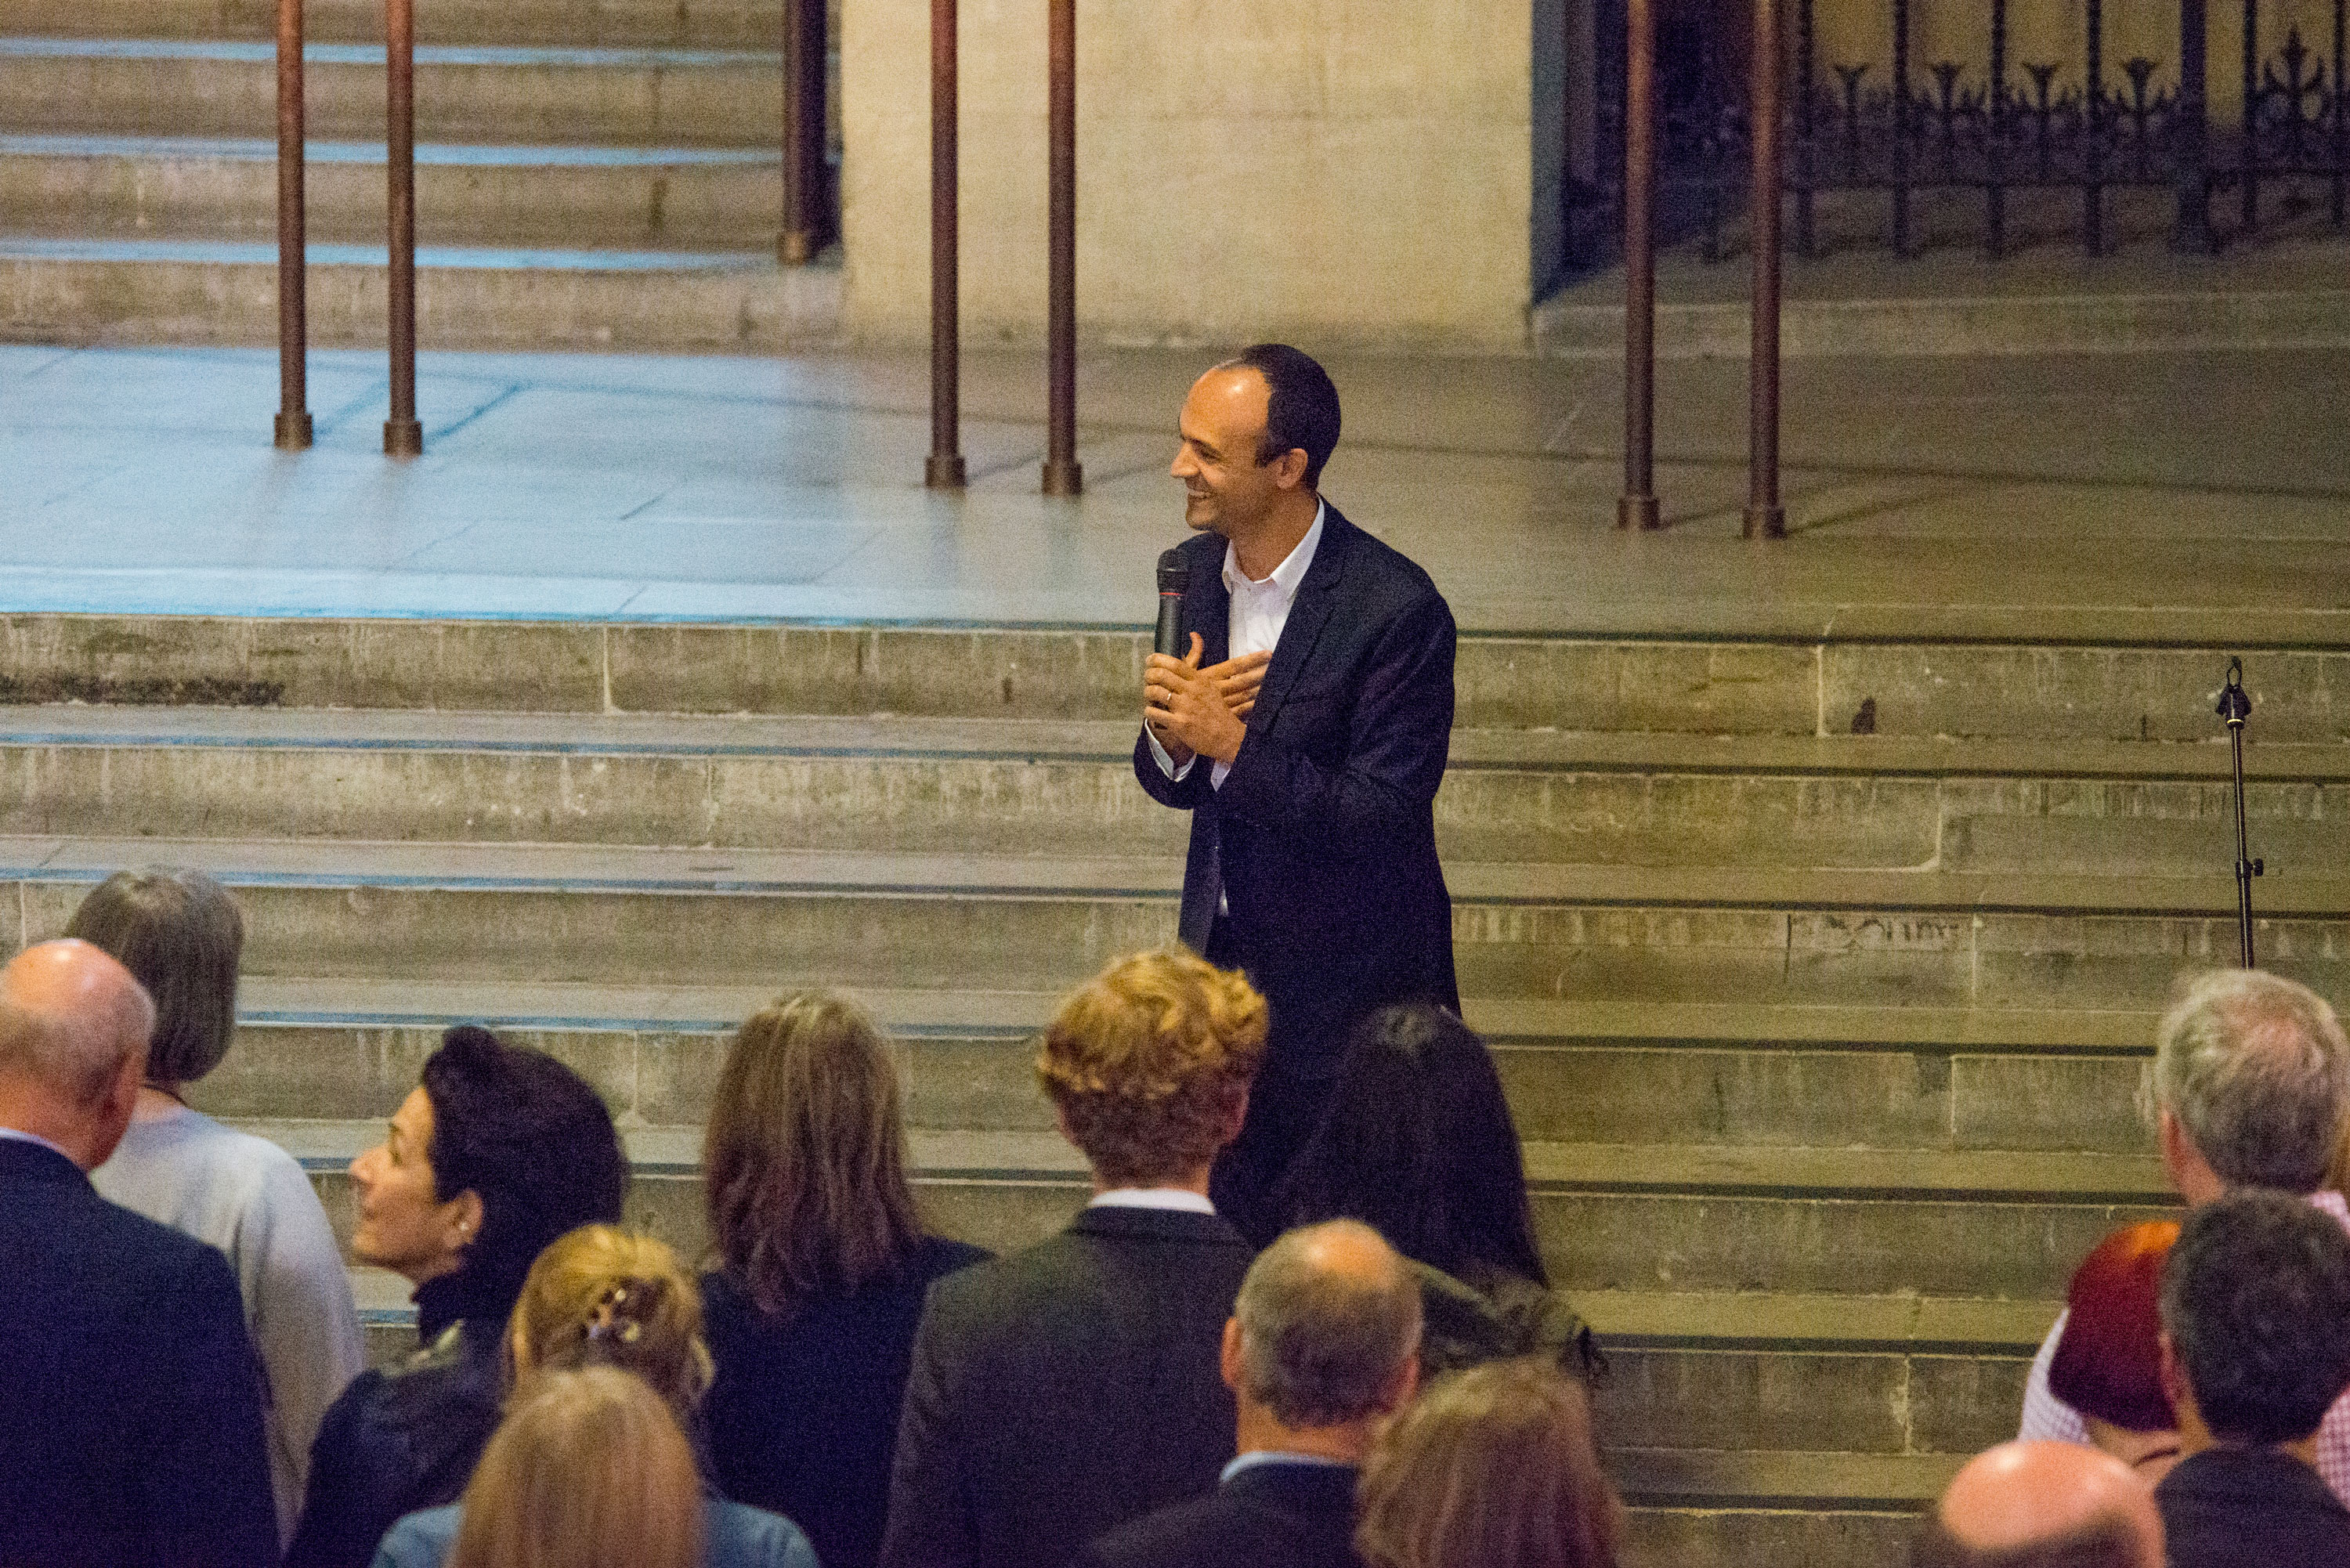 Jorge Otero-Pailos introducing his work The Ethics of Dust (2016) at Westminster Hall, London. Photograph: Will Eckersley, 28 June 2016